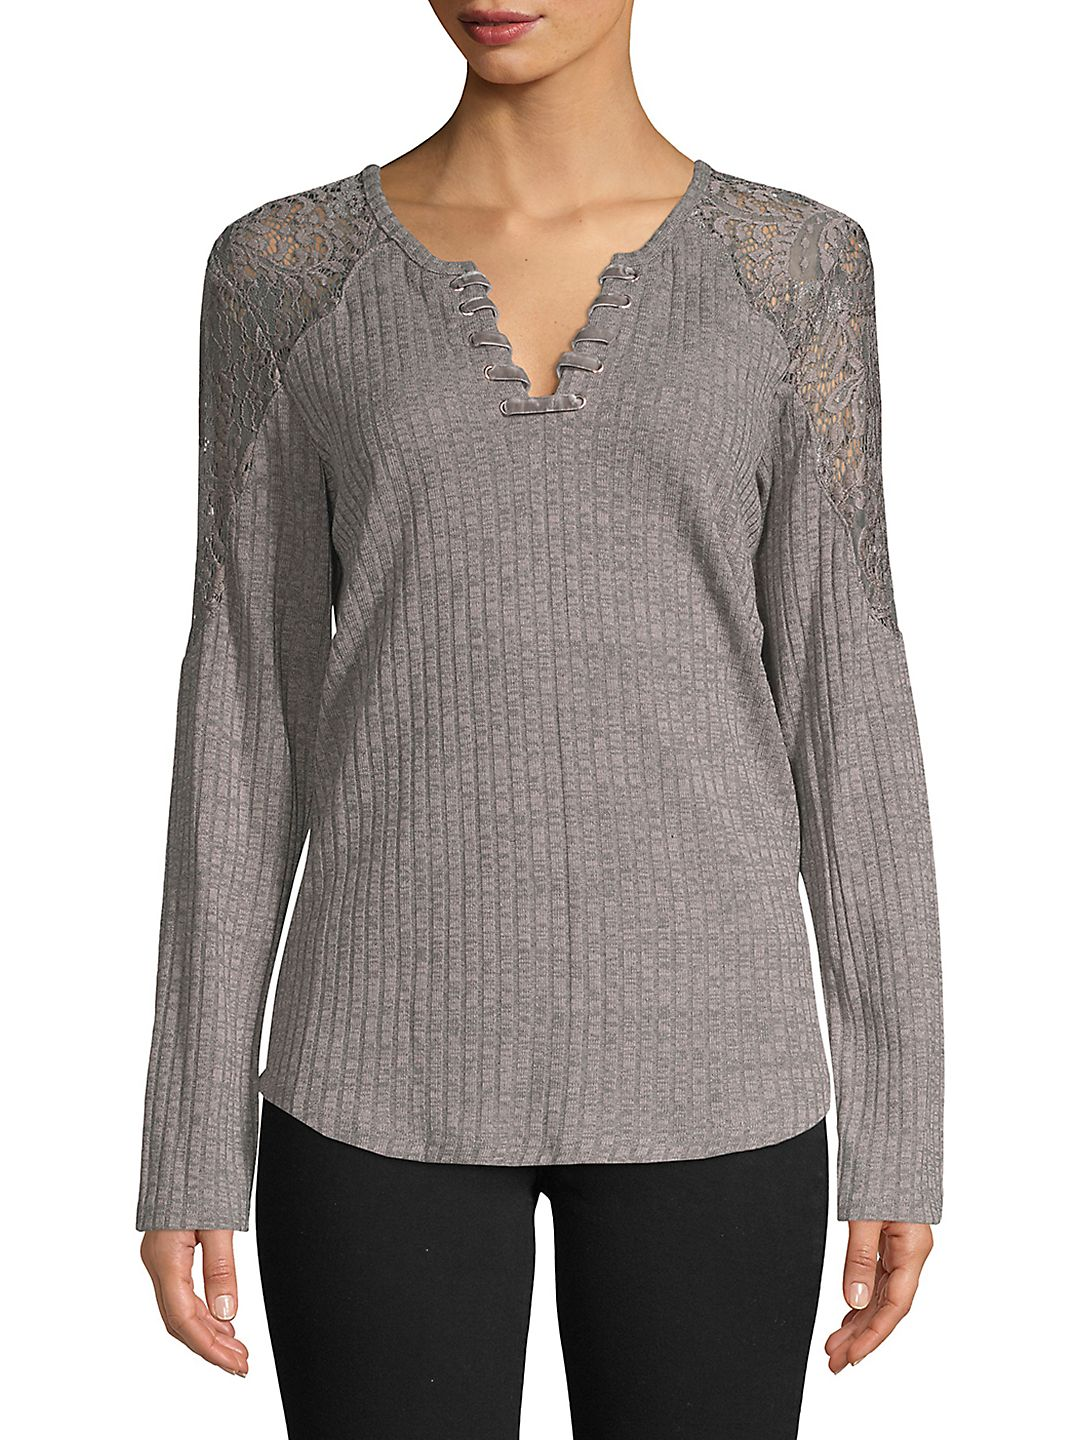 Textured Lace-Trimmed Top